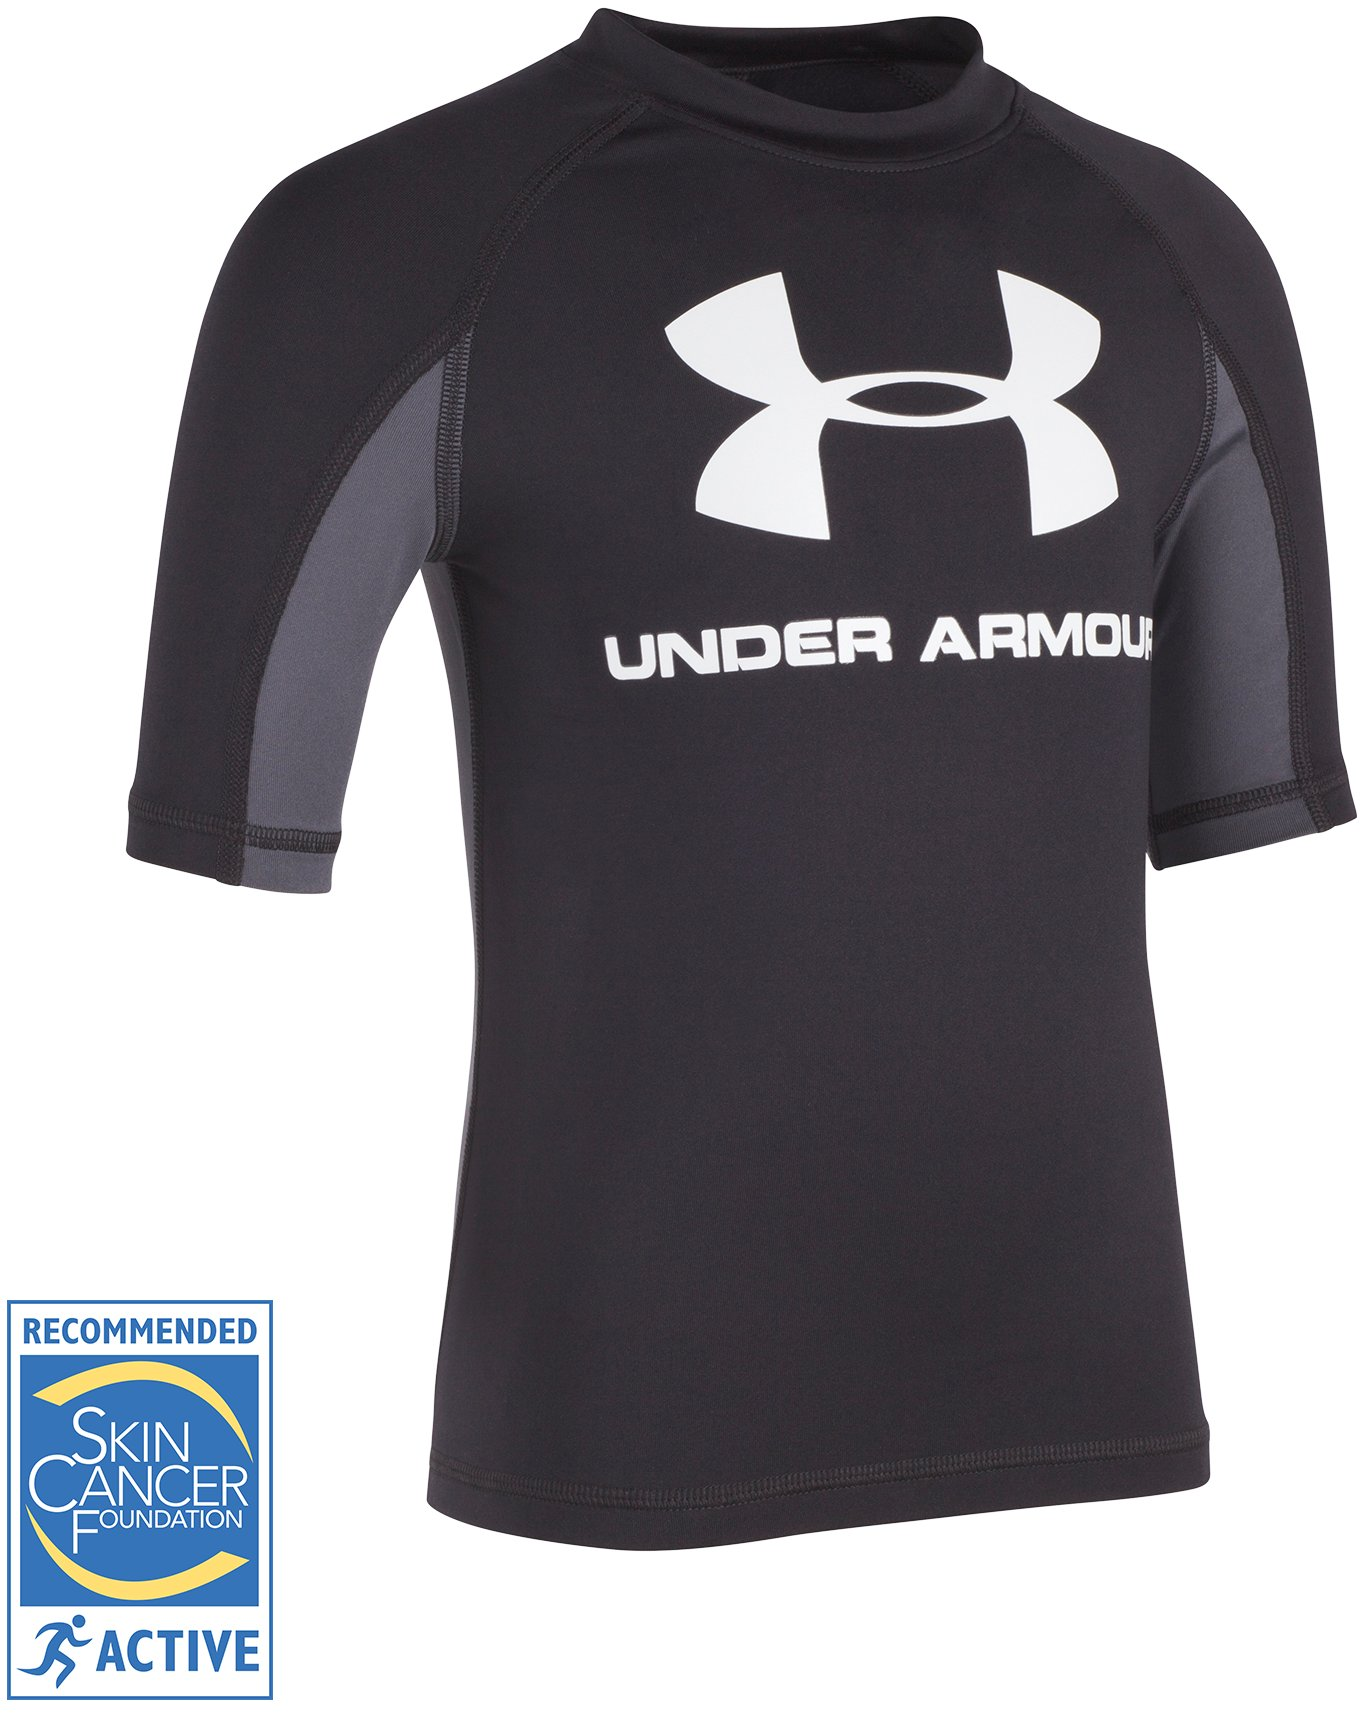 Boys' Pre-School UA Compression Rashguard Short Sleeve Shirt, Black , undefined